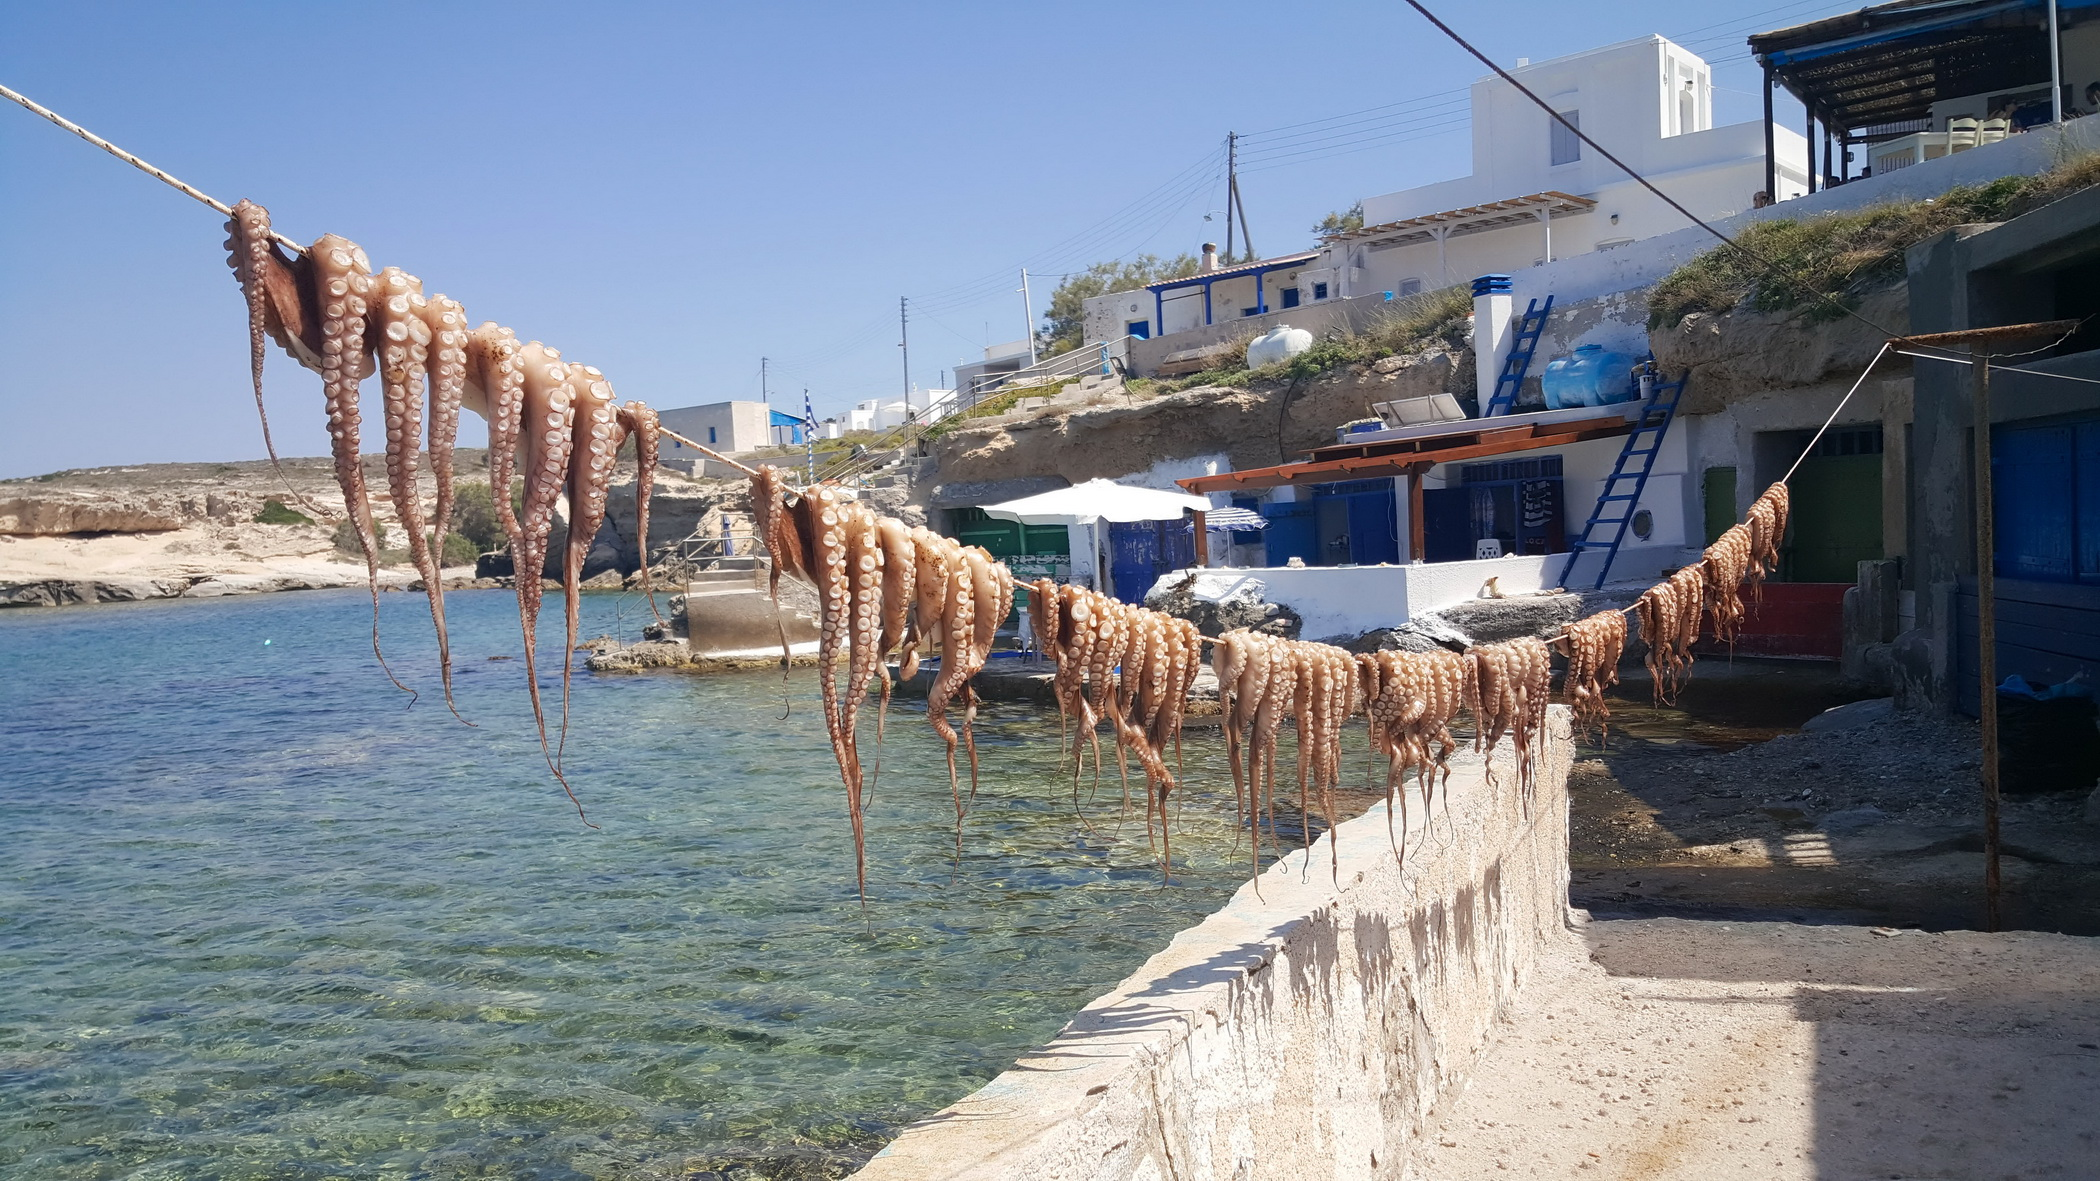 Octopus drying Greek travel